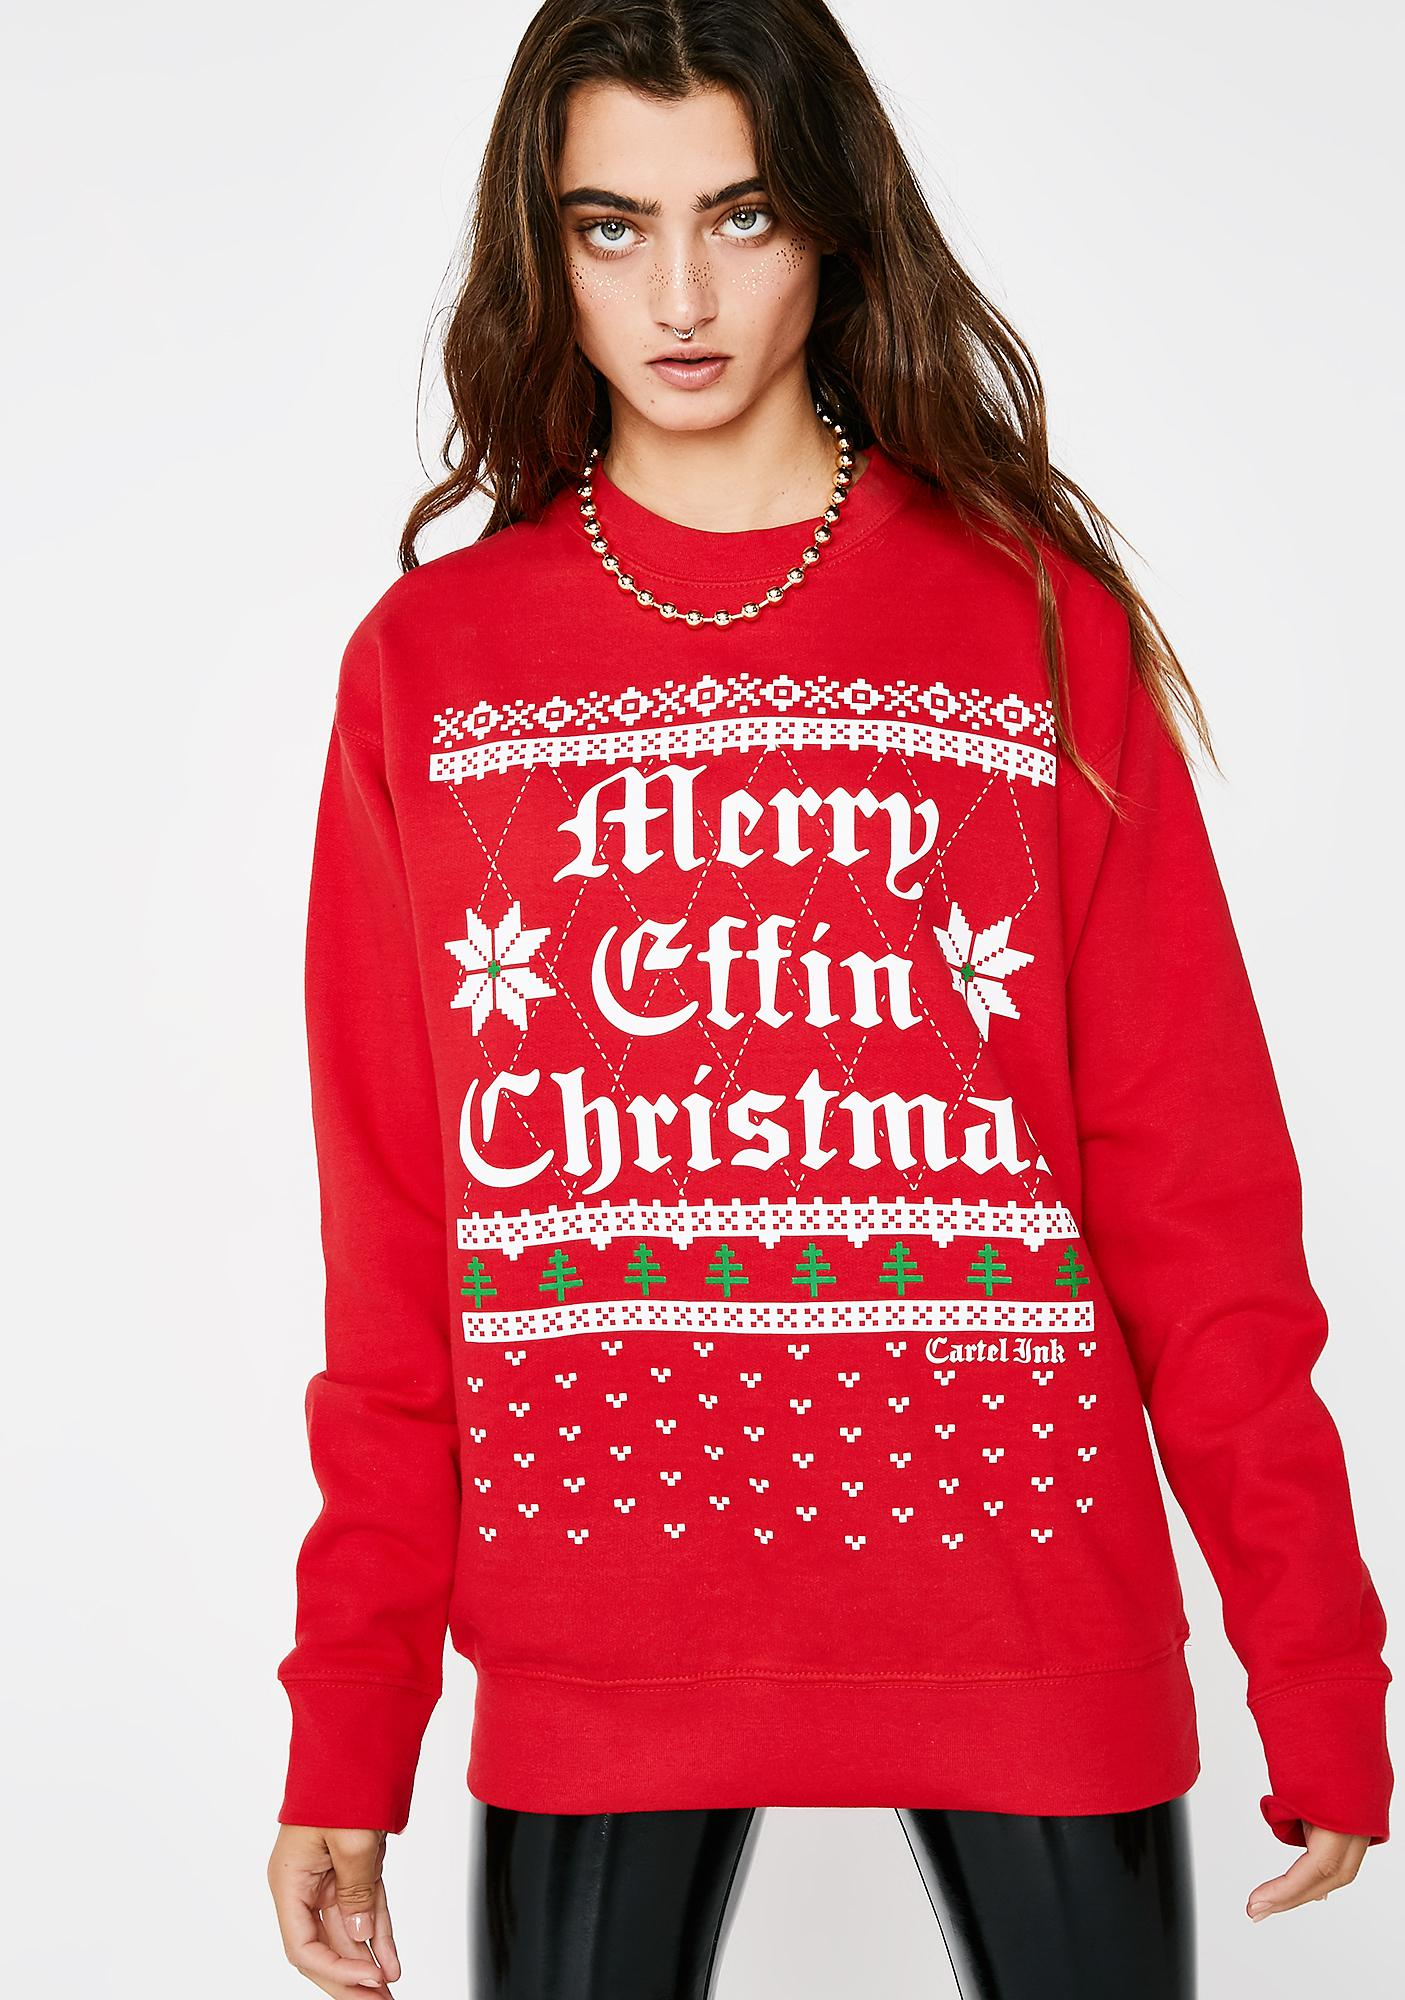 Merry Effin' Christmas Sweater